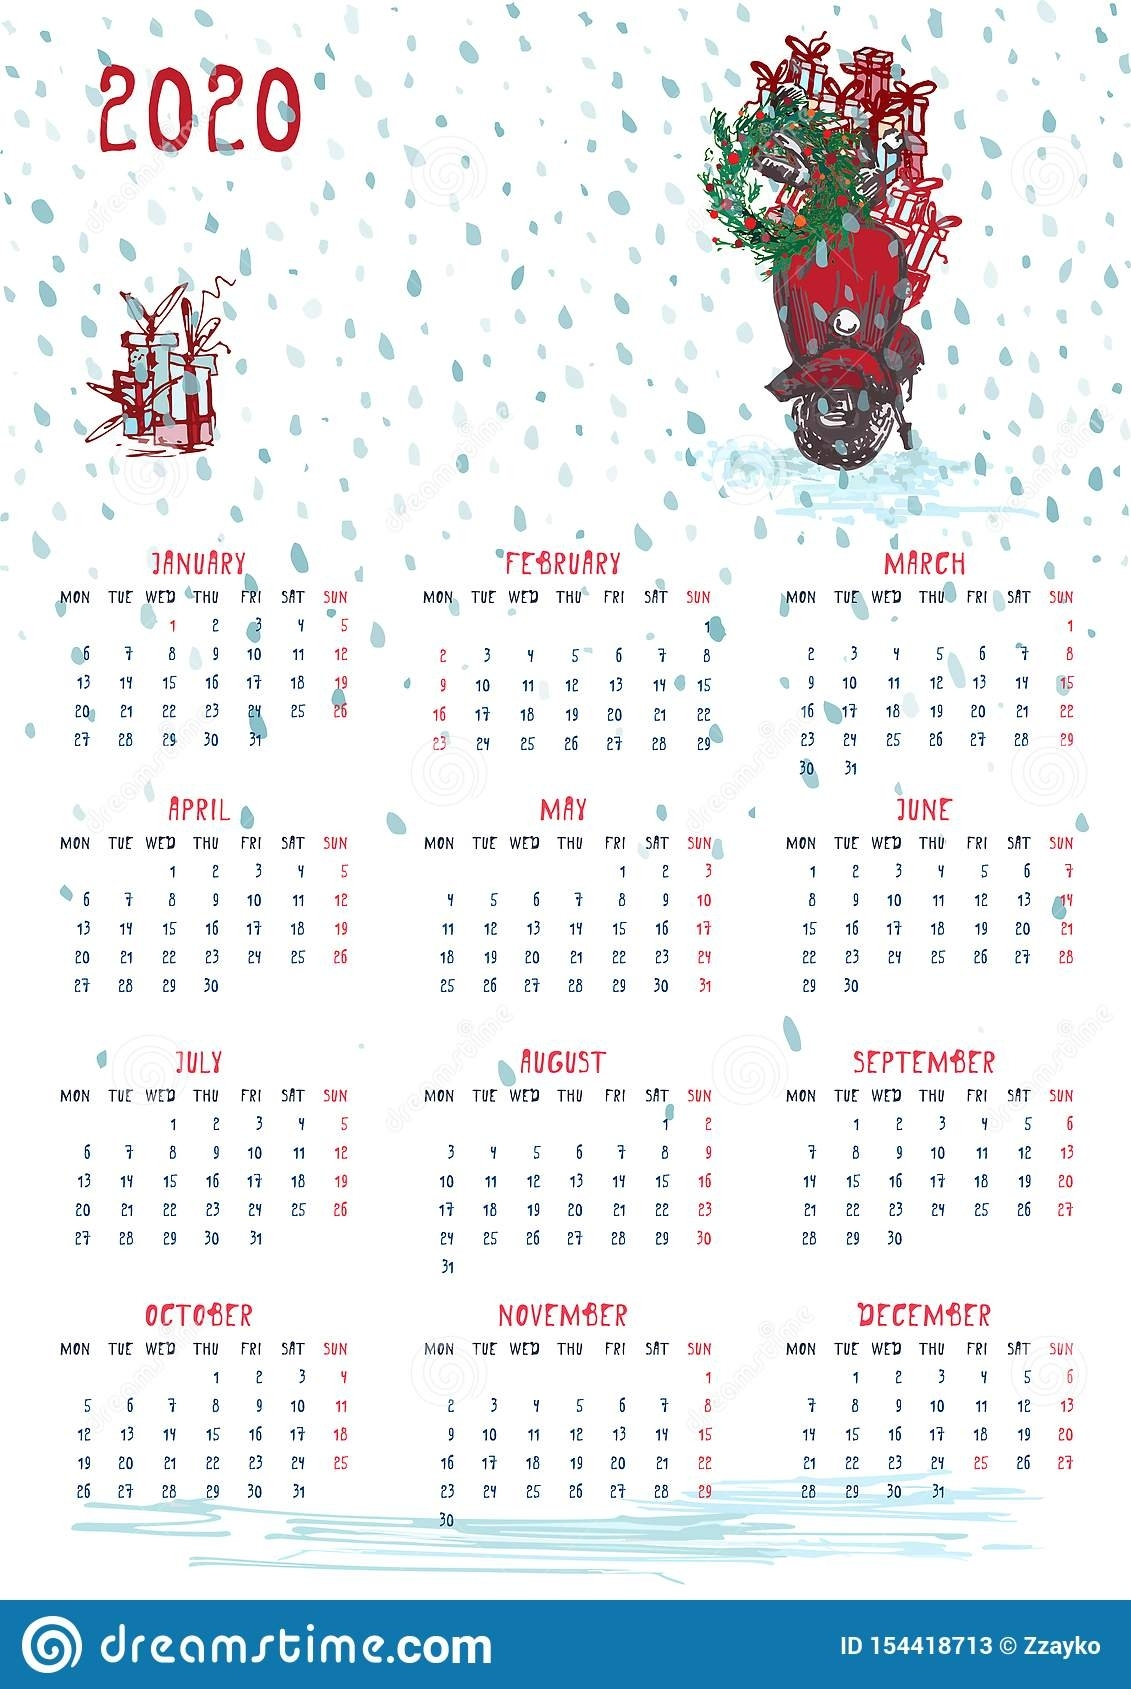 2020 Calendar Planner Whith Red Christmas Truck, New Year Remarkable Christmas Calendar 2020 Printable Free